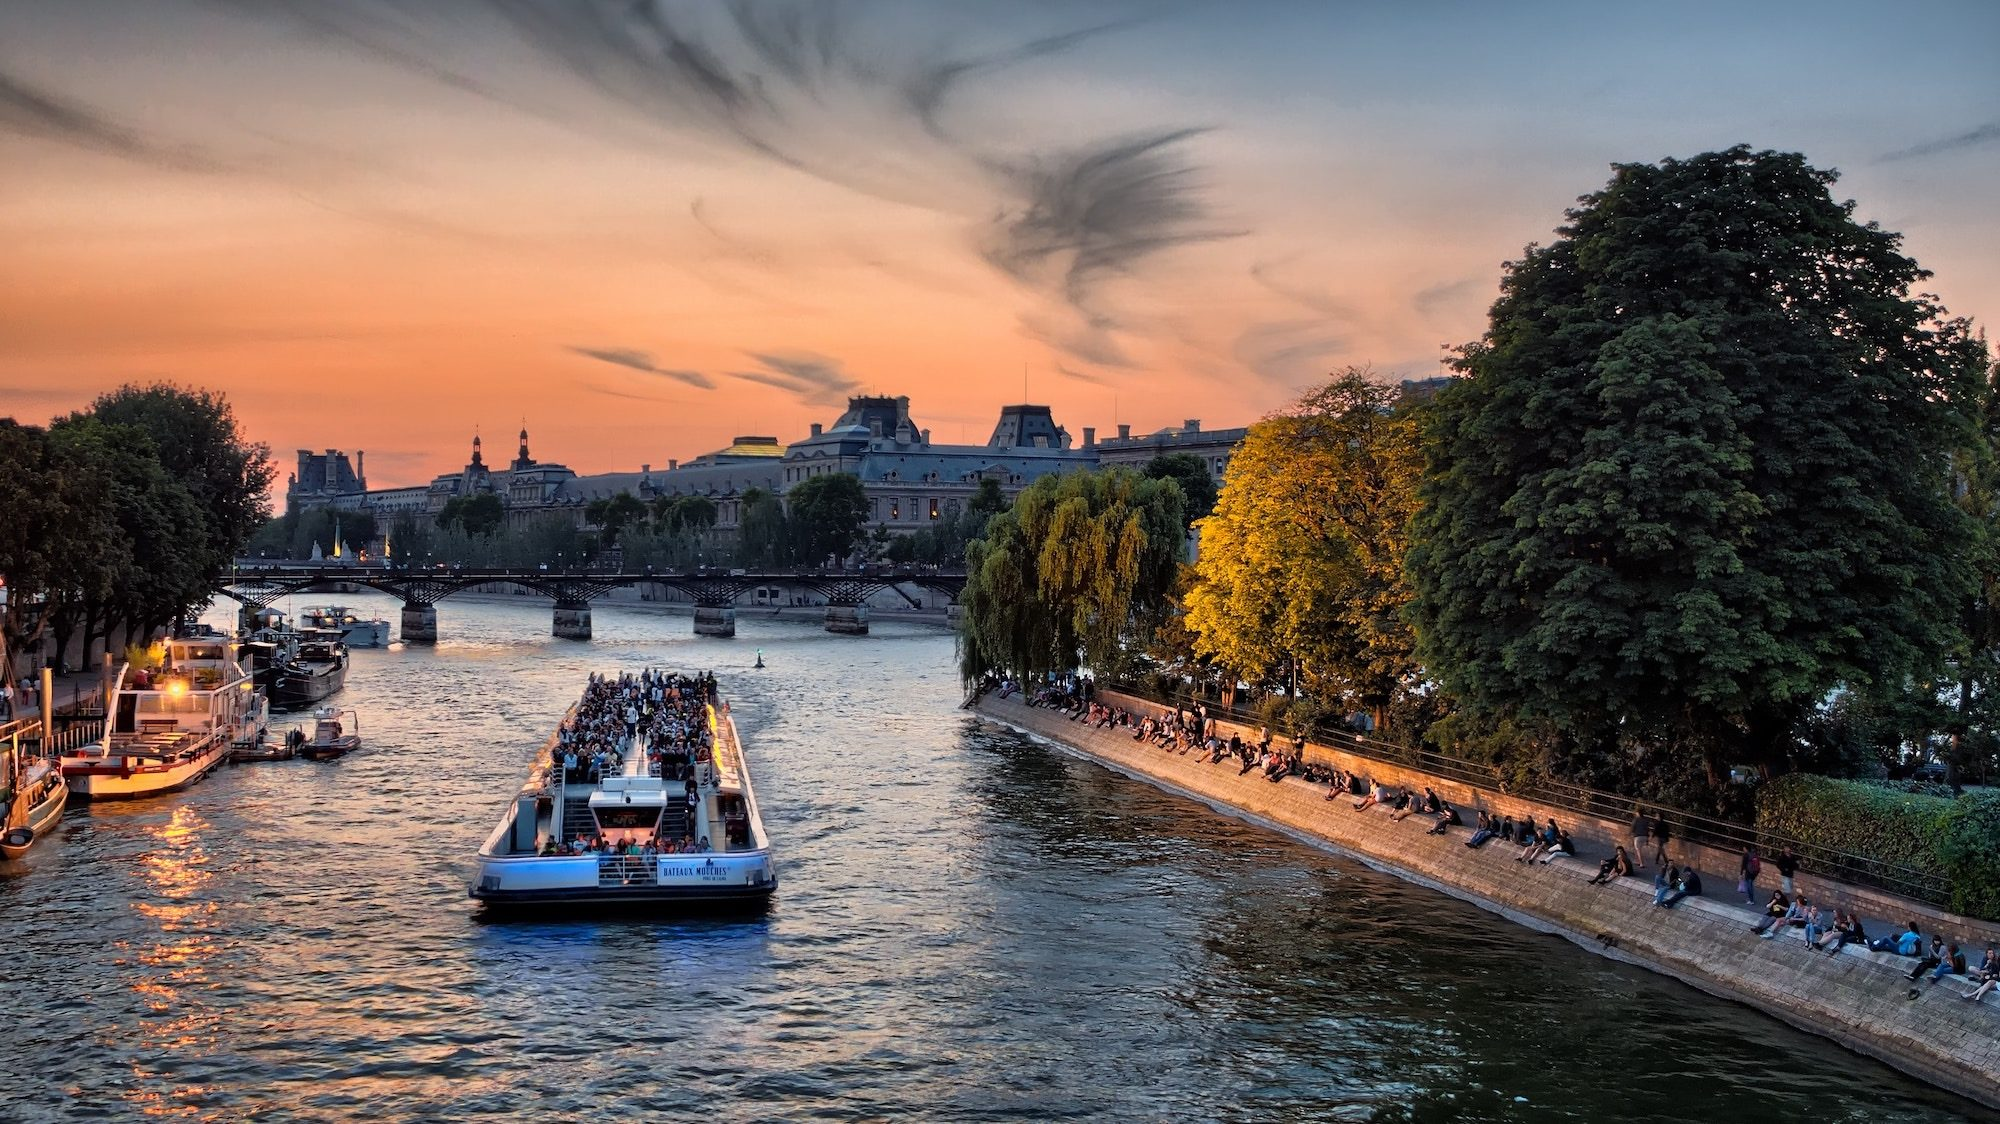 A view of the River Seine at sunset and a boat is sailing on the water, everything around it is golden from the sunlight.